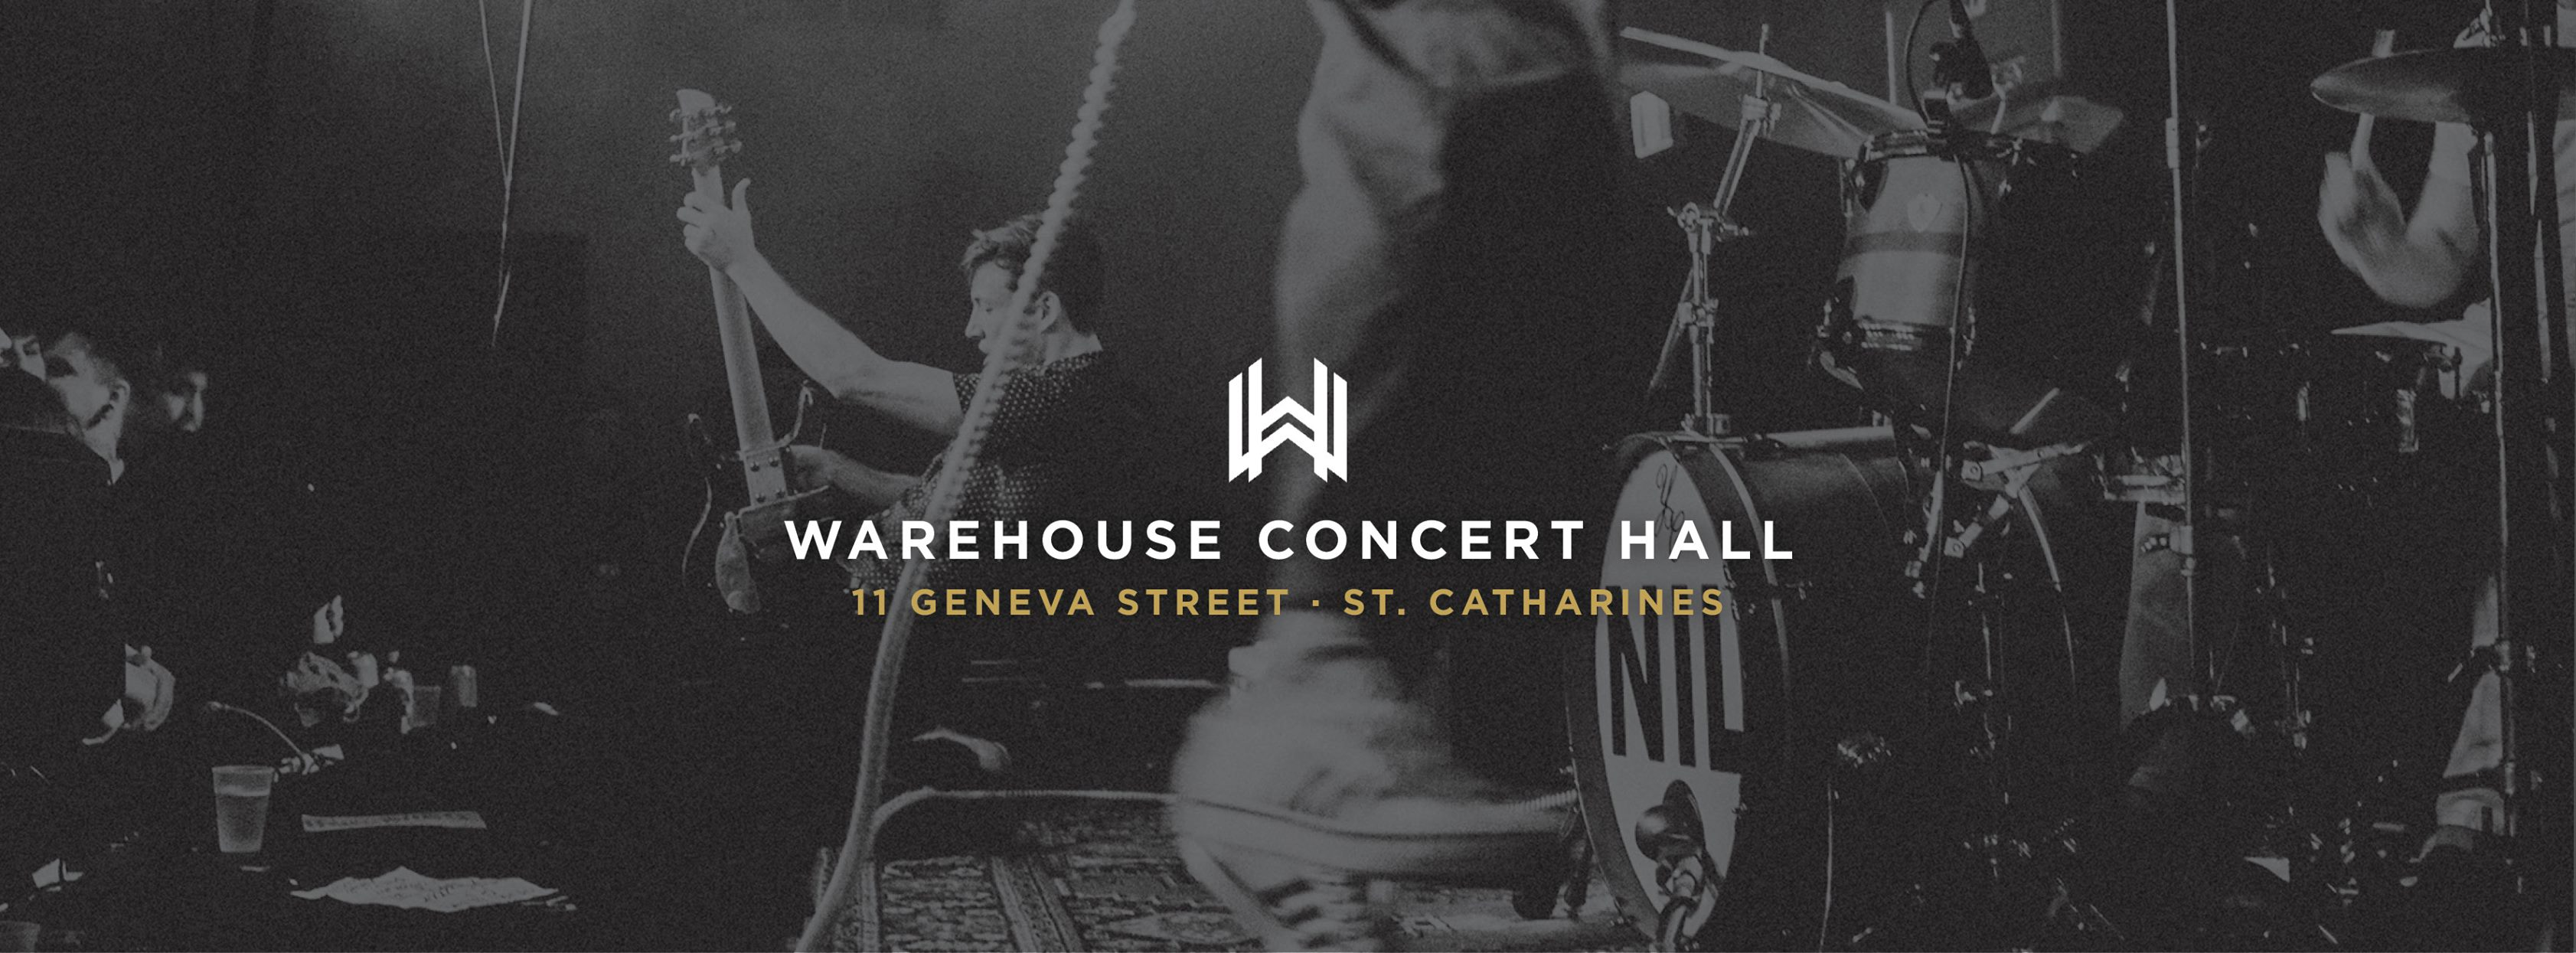 Find tickets from Warehouse Concert Hall